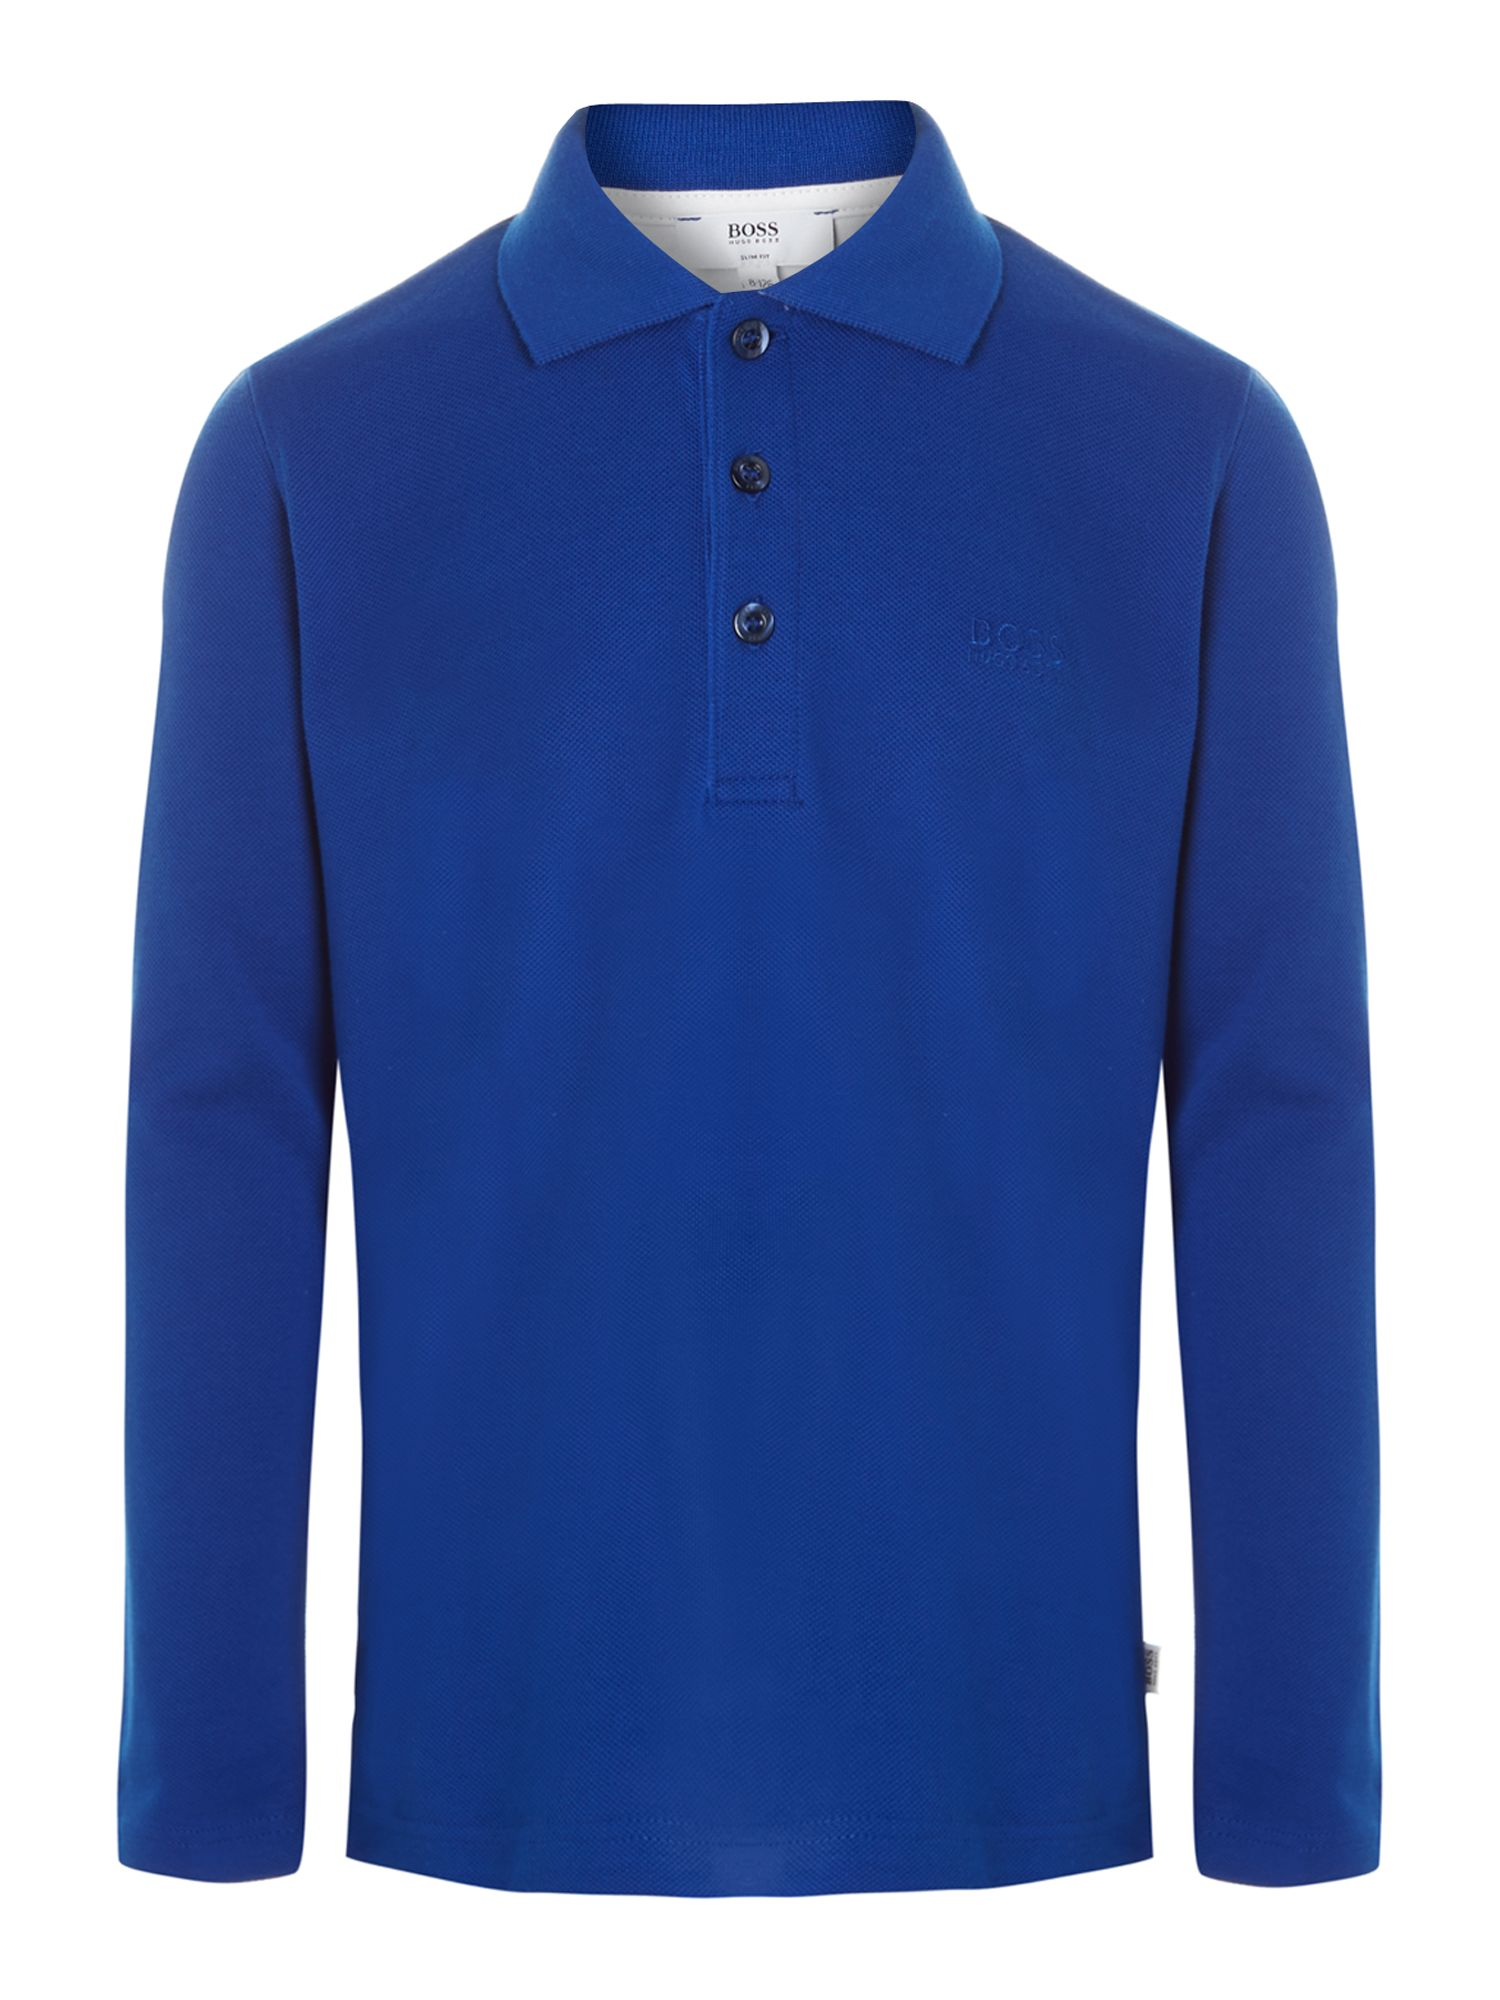 Boy's cotton long sleeve polo